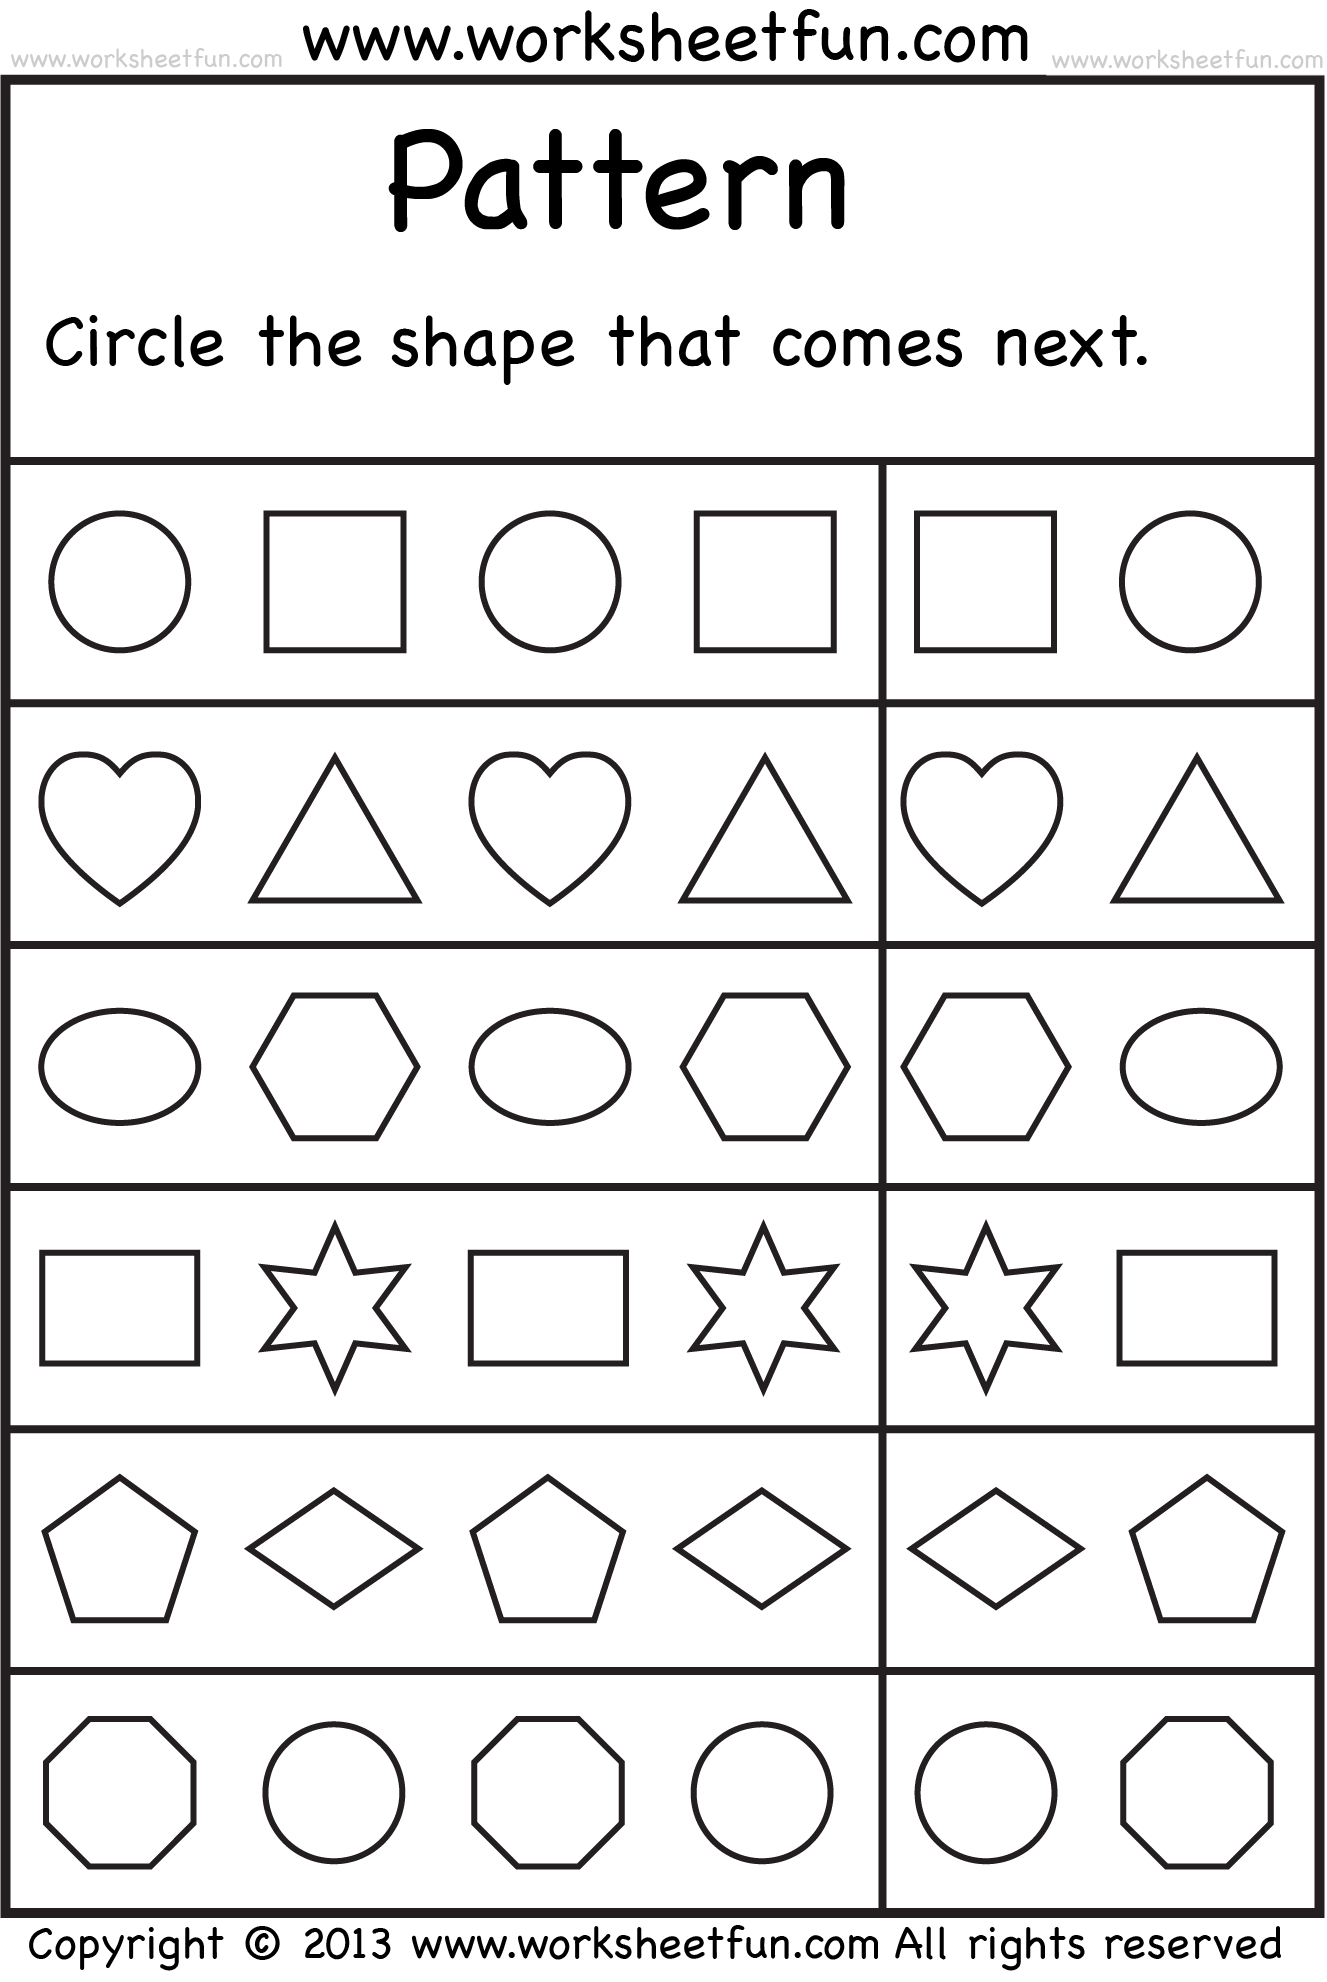 Proatmealus  Gorgeous  Images About School Worksheets On Pinterest  Number Words  With Exquisite  Images About School Worksheets On Pinterest  Number Words Alphabet Worksheets And Free Printable Kindergarten Worksheets With Nice Commas And Quotation Marks Worksheets Also Sources Of Energy Worksheet In Addition Nd Grade Adverb Worksheets And Printable First Grade Reading Worksheets As Well As Th Step Worksheet Joe And Charlie Additionally Chemistry Unit  Worksheet  From Pinterestcom With Proatmealus  Exquisite  Images About School Worksheets On Pinterest  Number Words  With Nice  Images About School Worksheets On Pinterest  Number Words Alphabet Worksheets And Free Printable Kindergarten Worksheets And Gorgeous Commas And Quotation Marks Worksheets Also Sources Of Energy Worksheet In Addition Nd Grade Adverb Worksheets From Pinterestcom